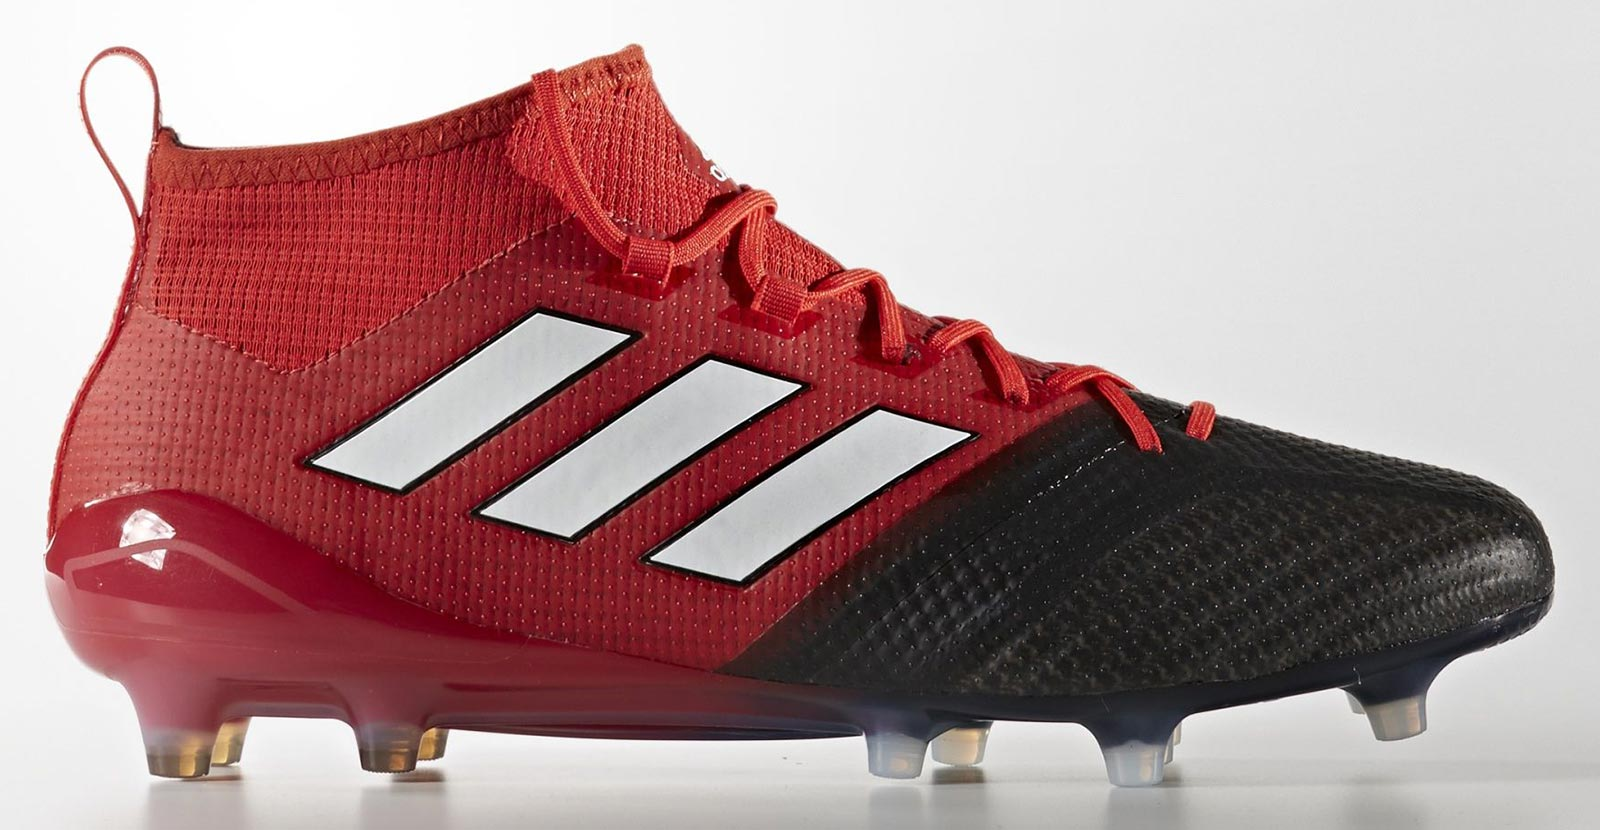 Adidas 2017 Soccer Shoes